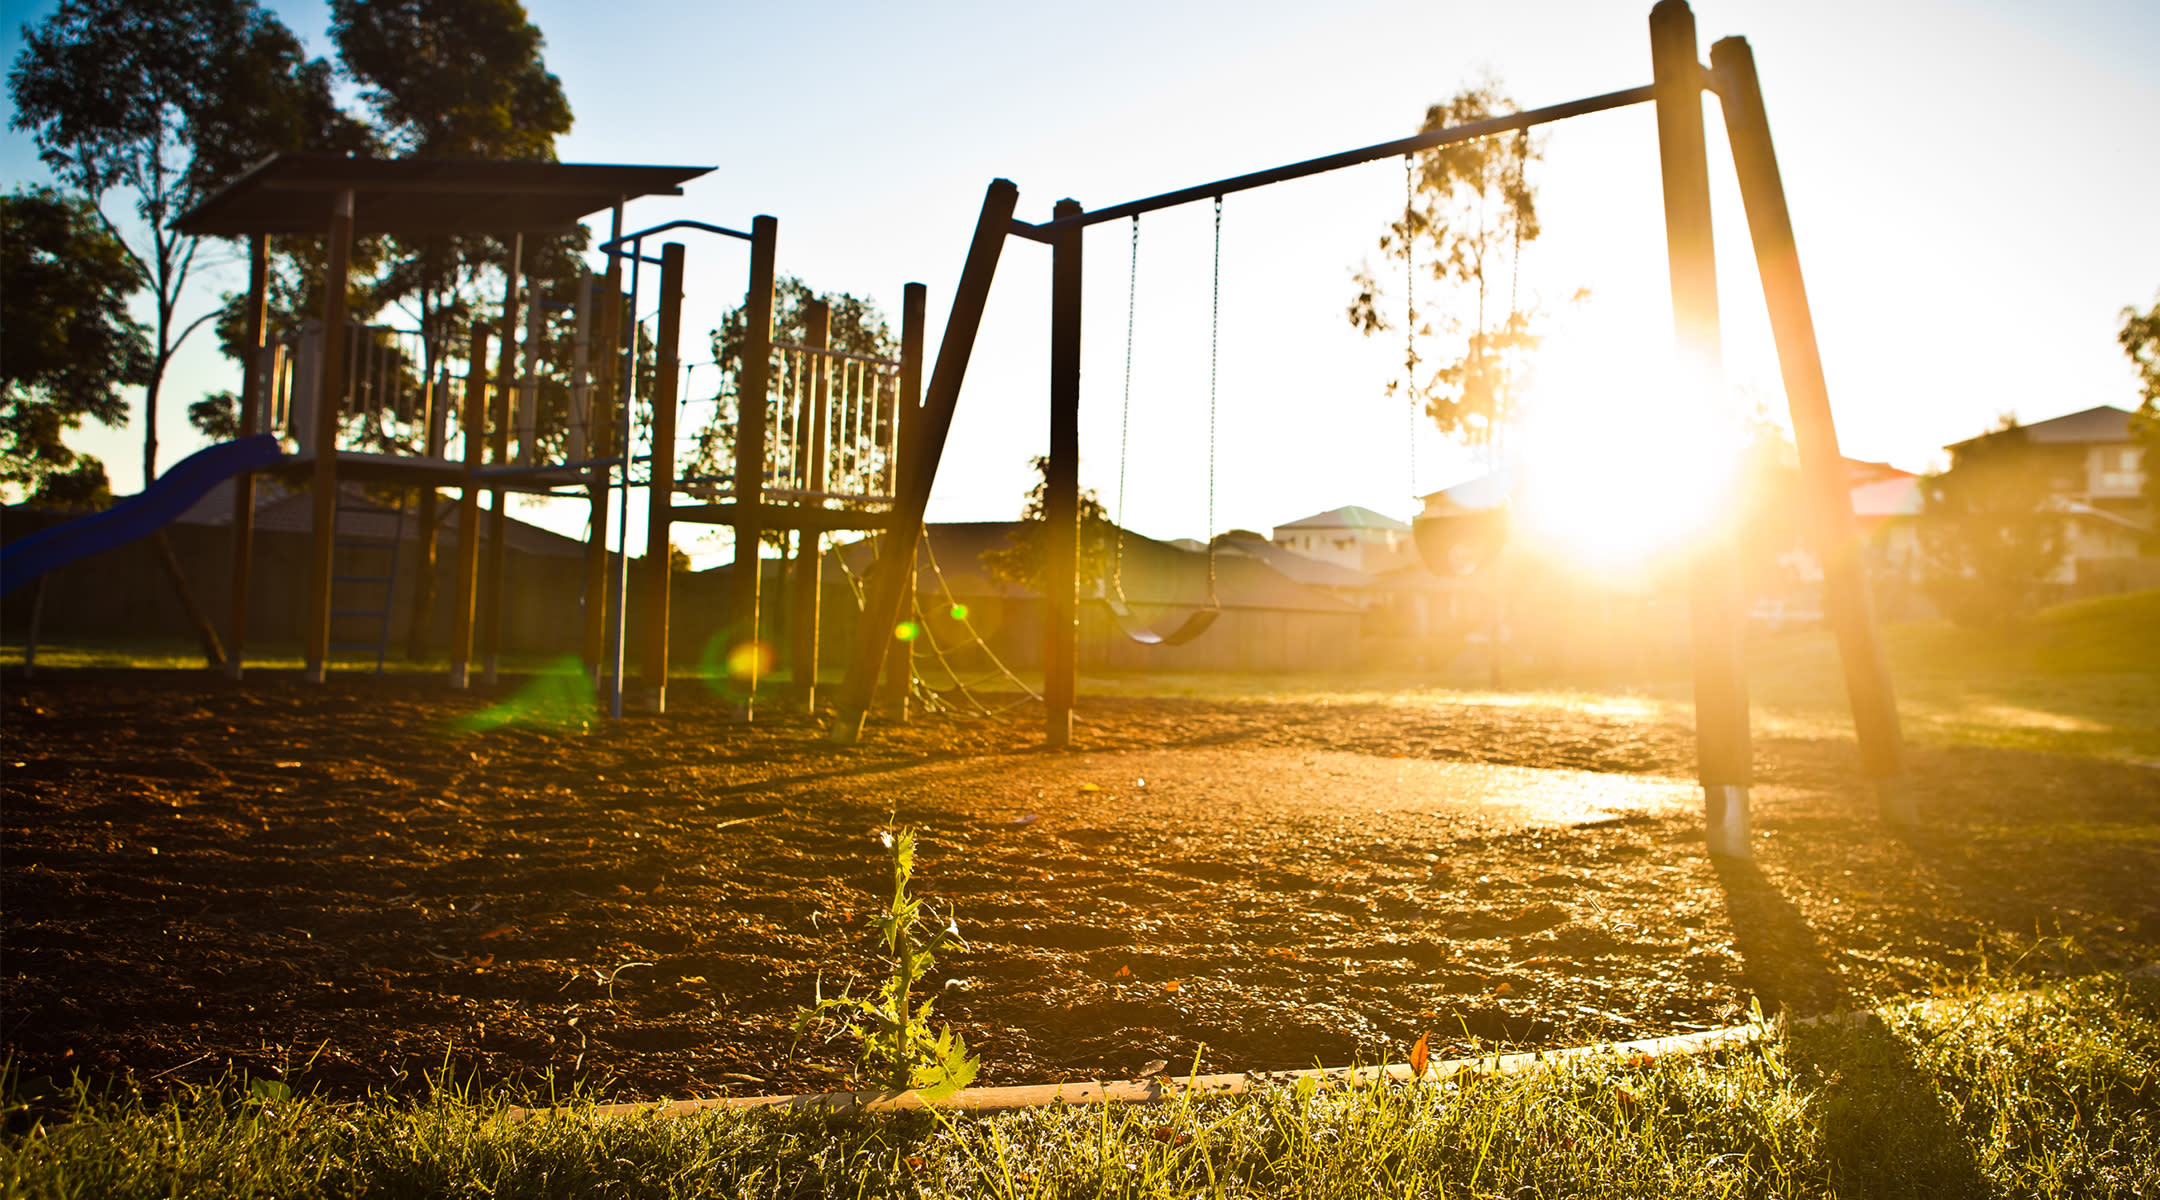 Playground at sunset